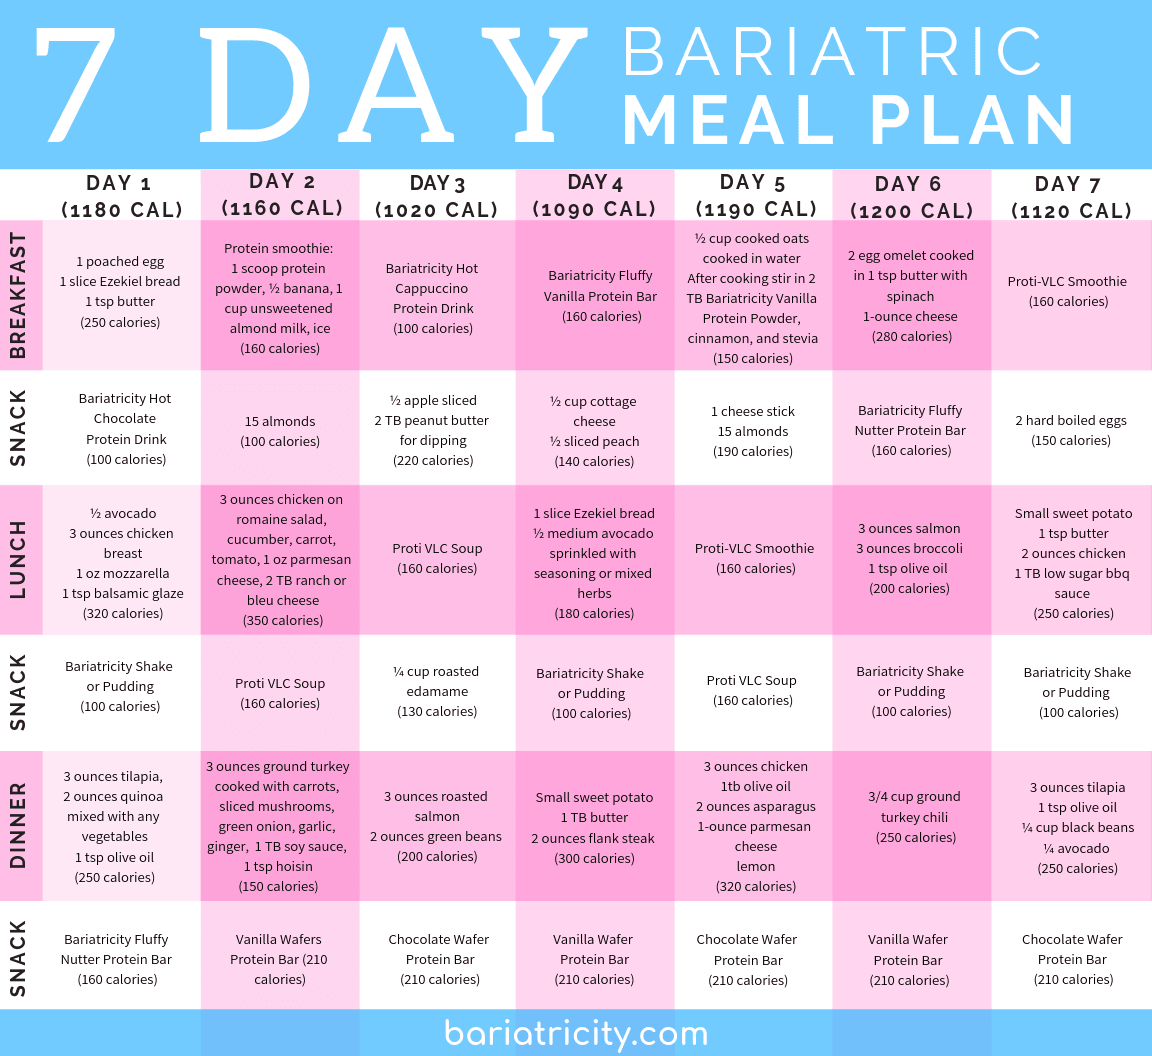 Bariatric Meal Planning Guide 7 Day Sample Meal Plan Bariatricity Bariatric Surgery Diet Bariatric Diet Bariatric Recipes